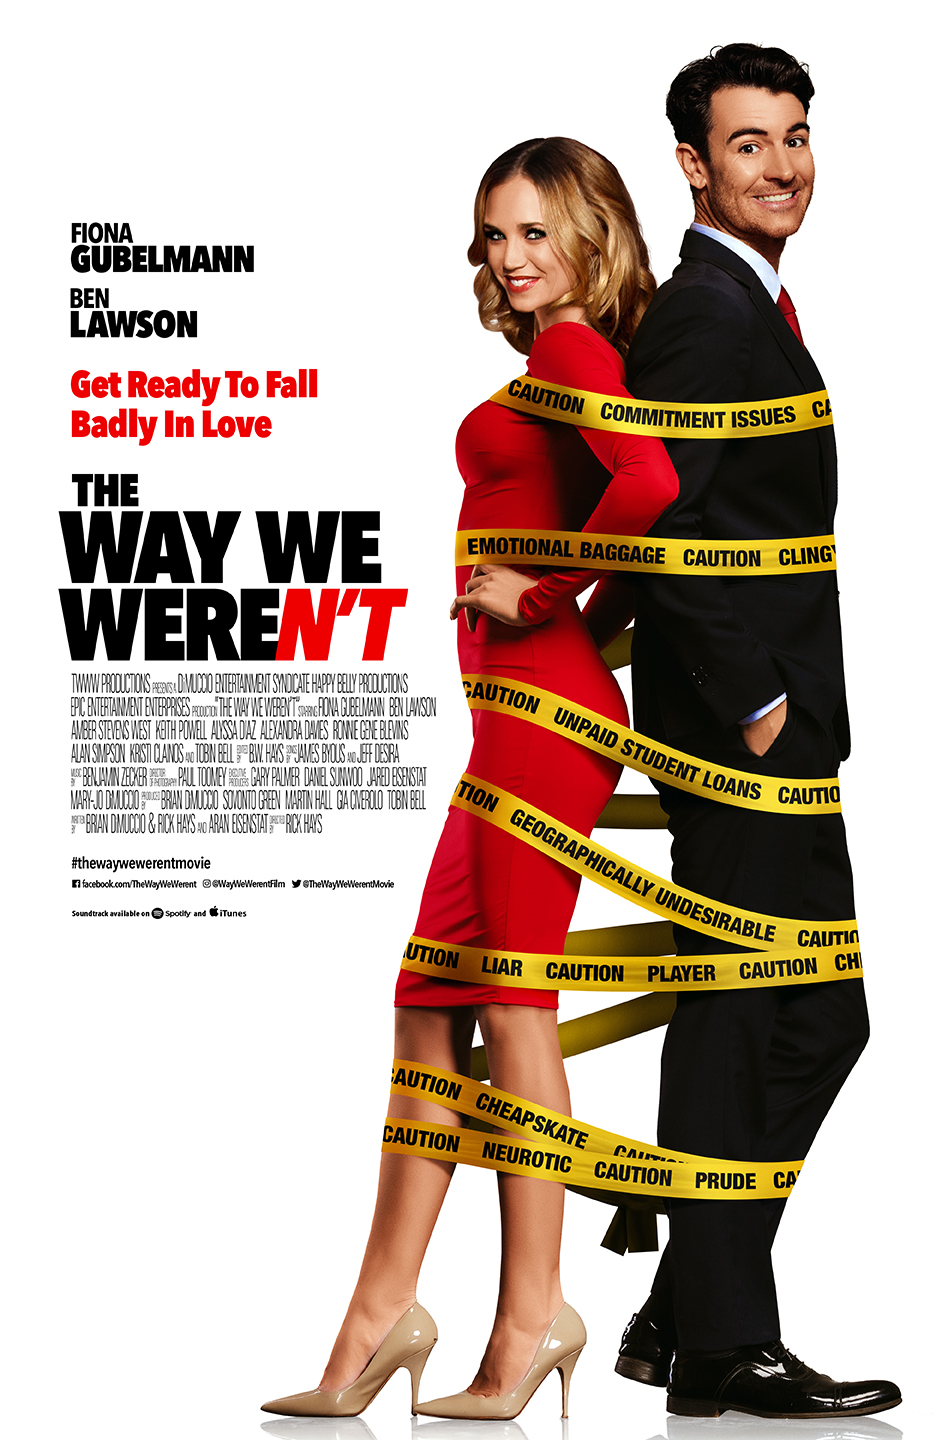 THE WAY WE WEREN'T • Poster Art